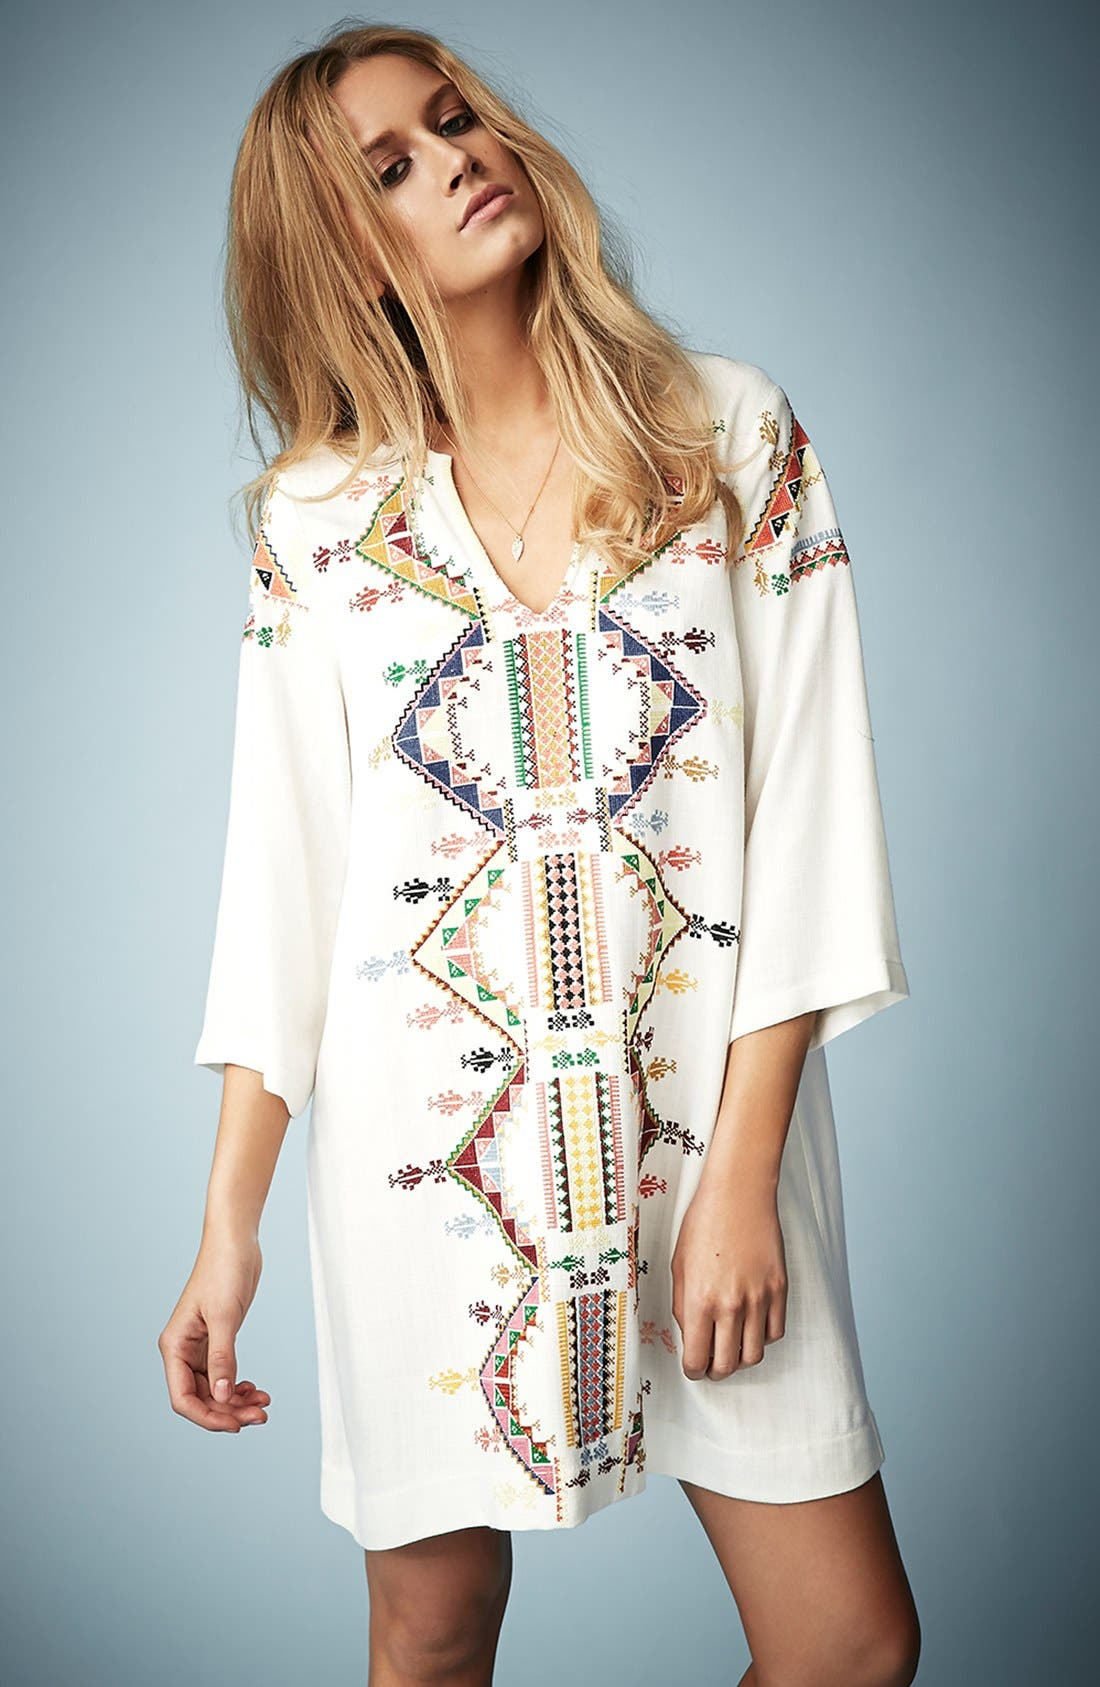 Alternate Image 1 Selected - Kate Moss for Topshop Embroidered Smock Dress